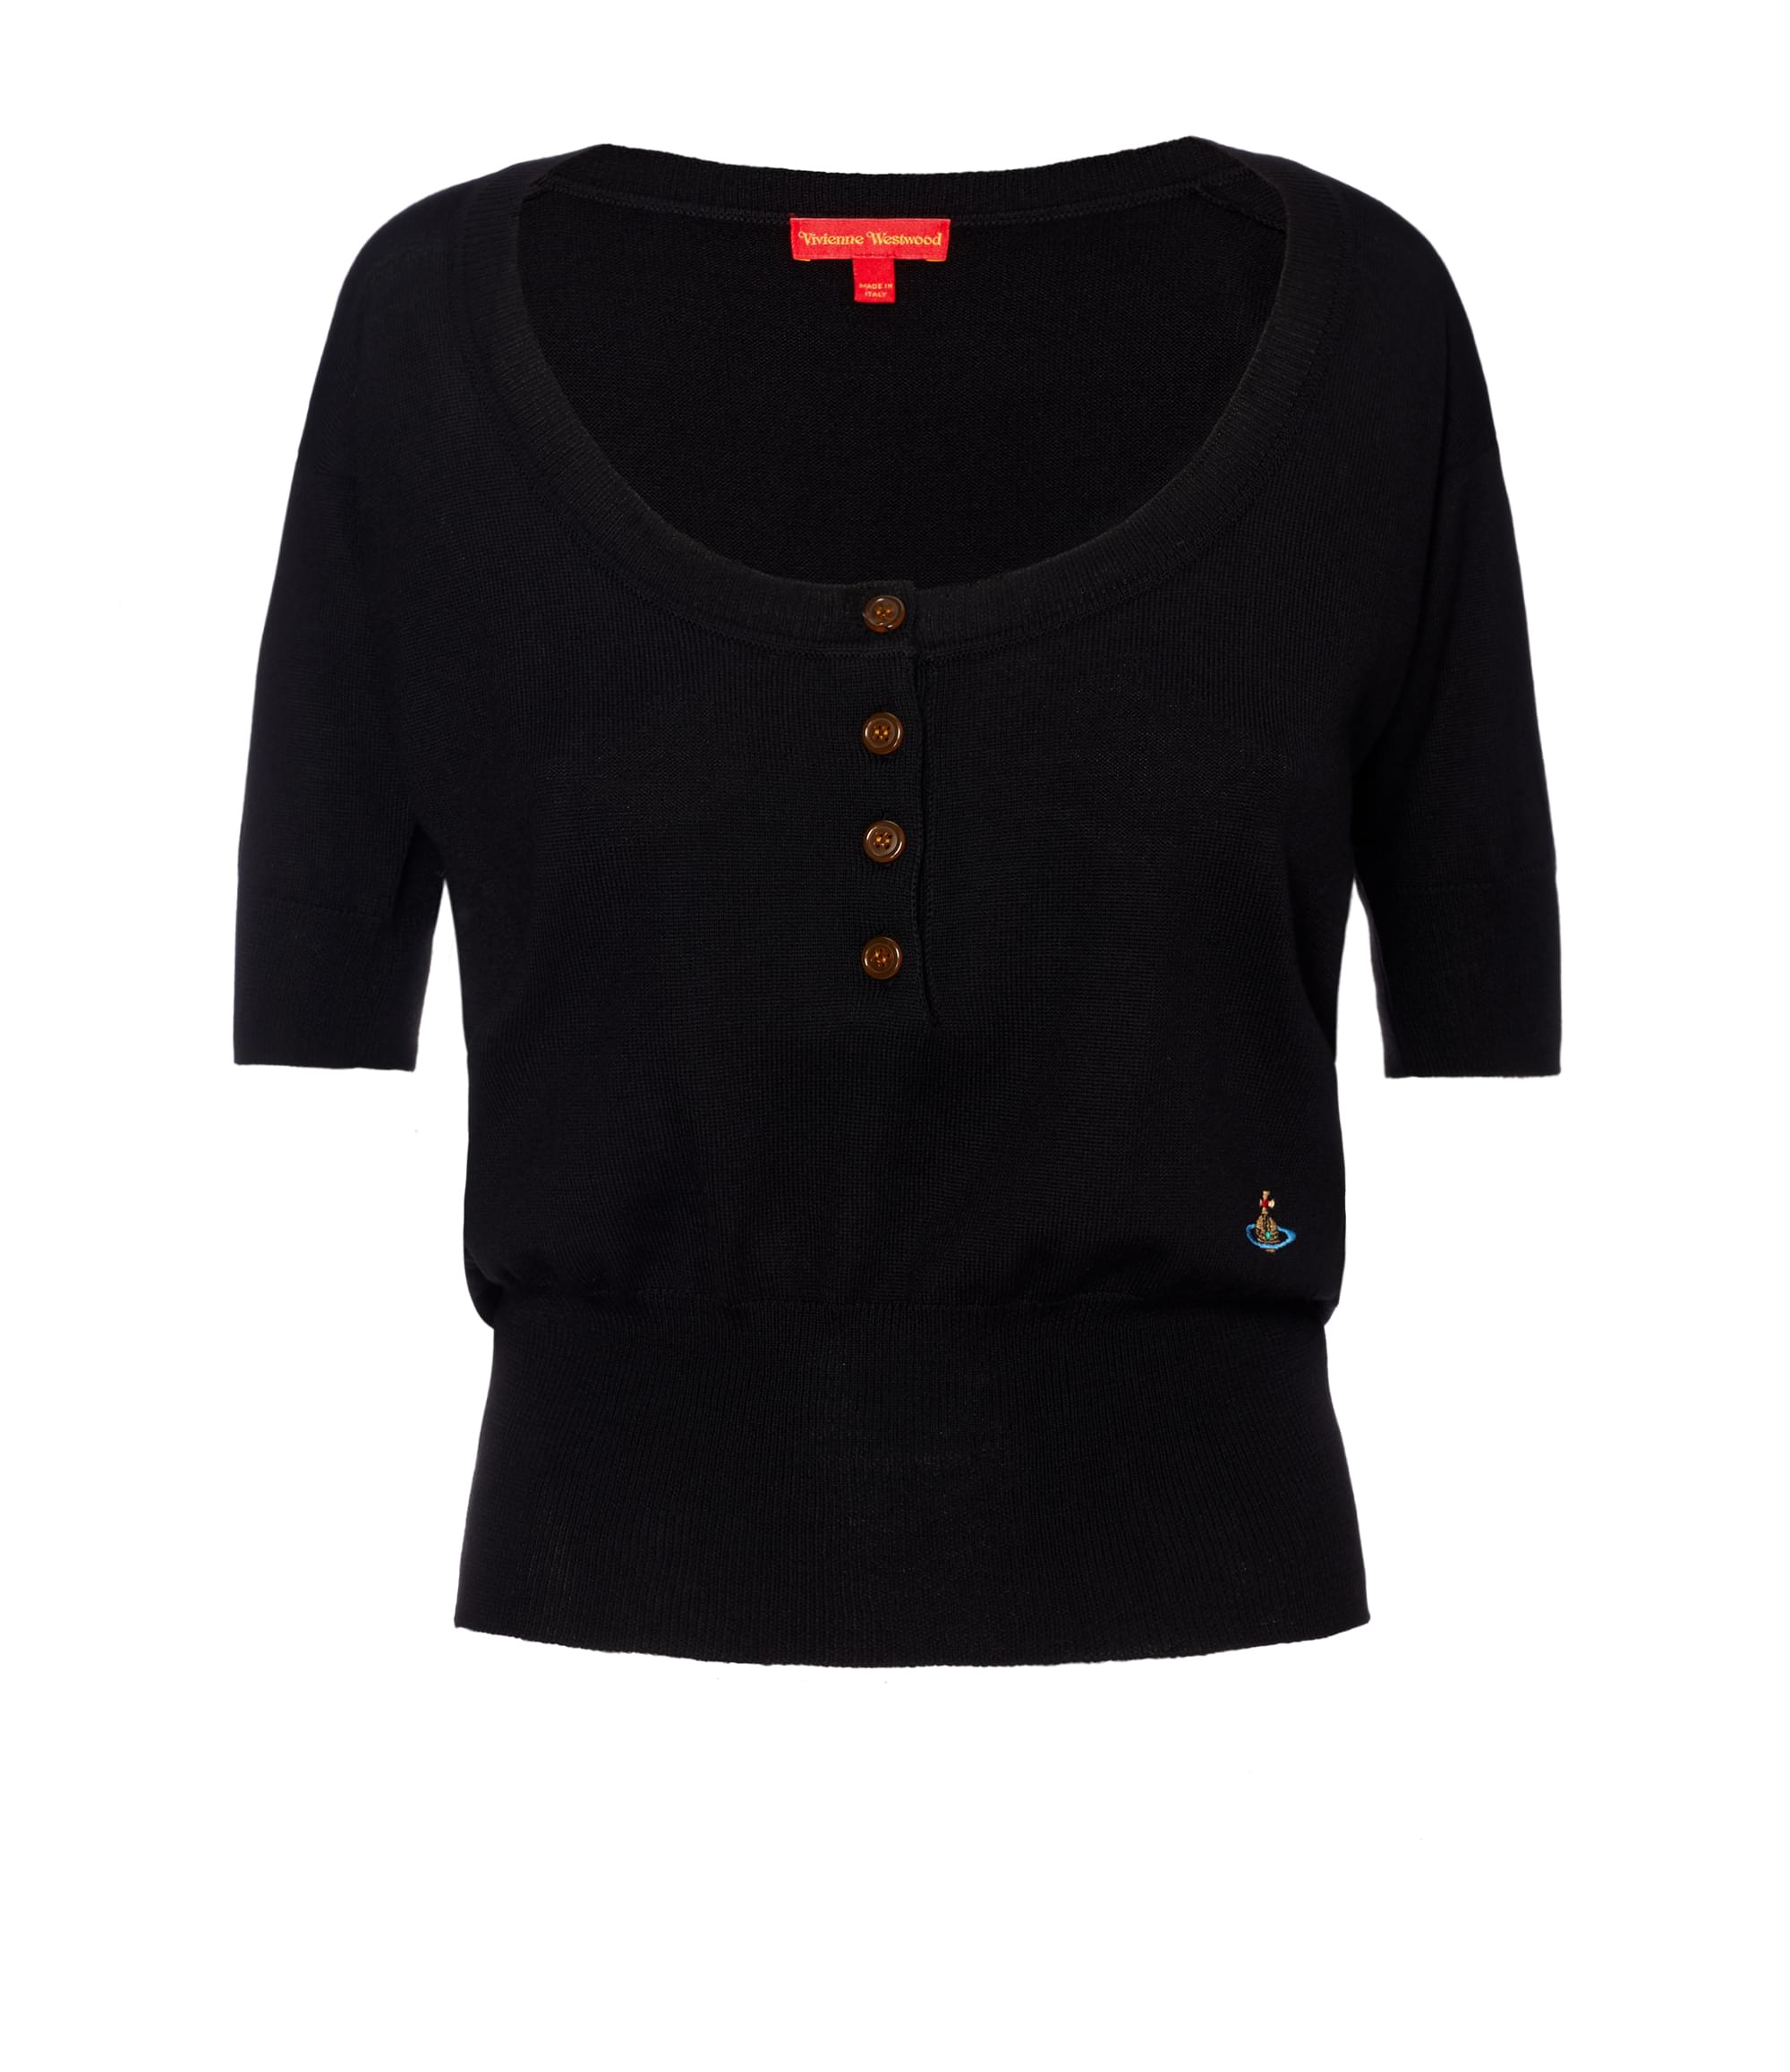 Vivienne Westwood Black La Lollo Polo